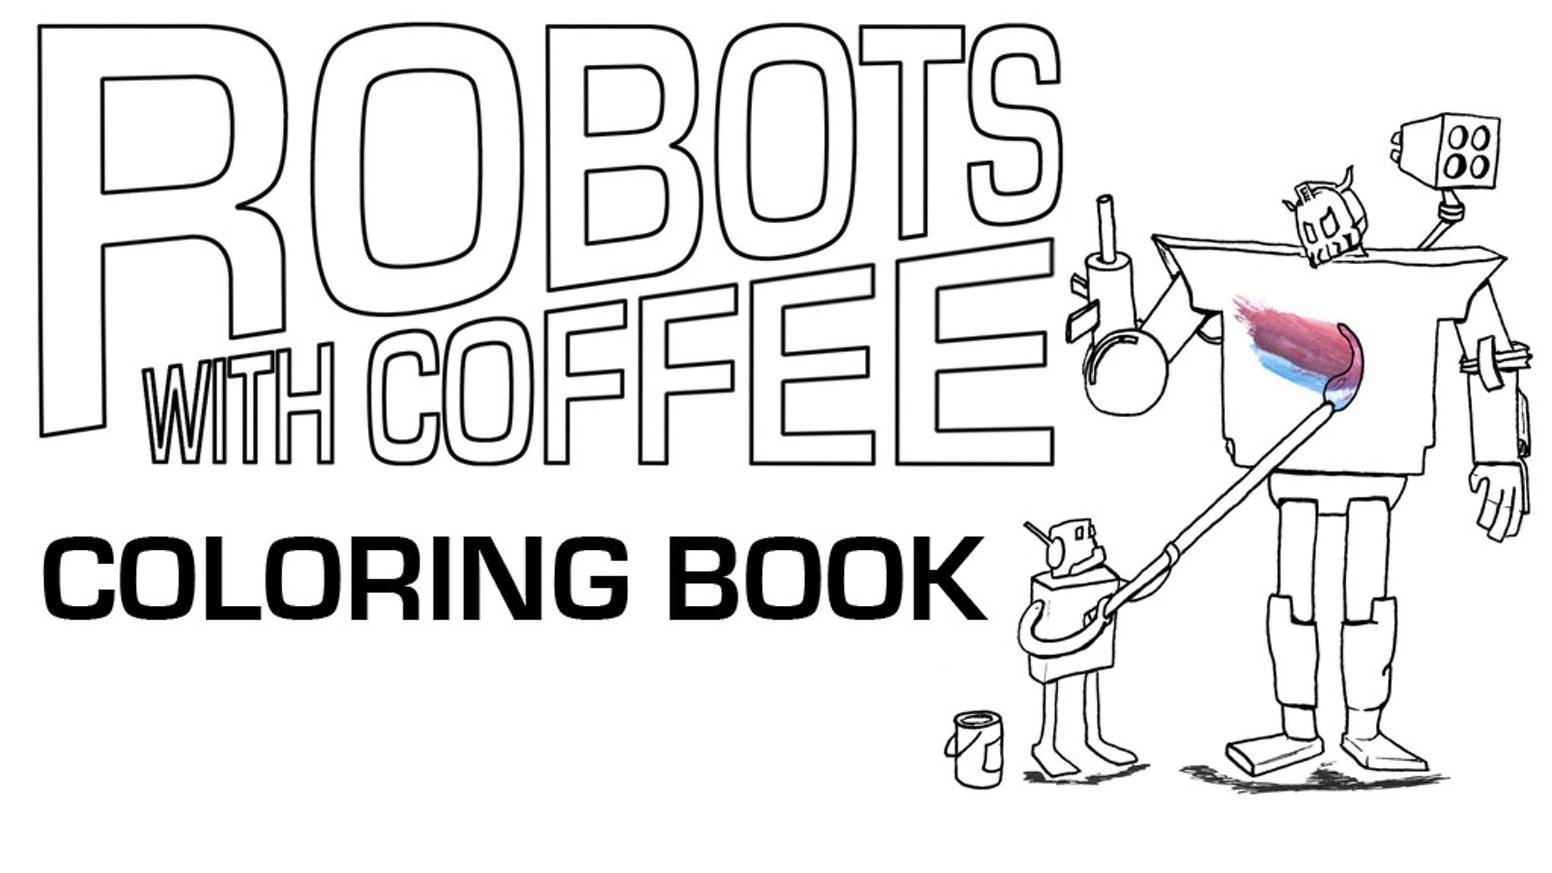 A hilarious and fun catalog parodying certain robot toys from the 80's, with 37 bios & drawings of original robot designs to color in!